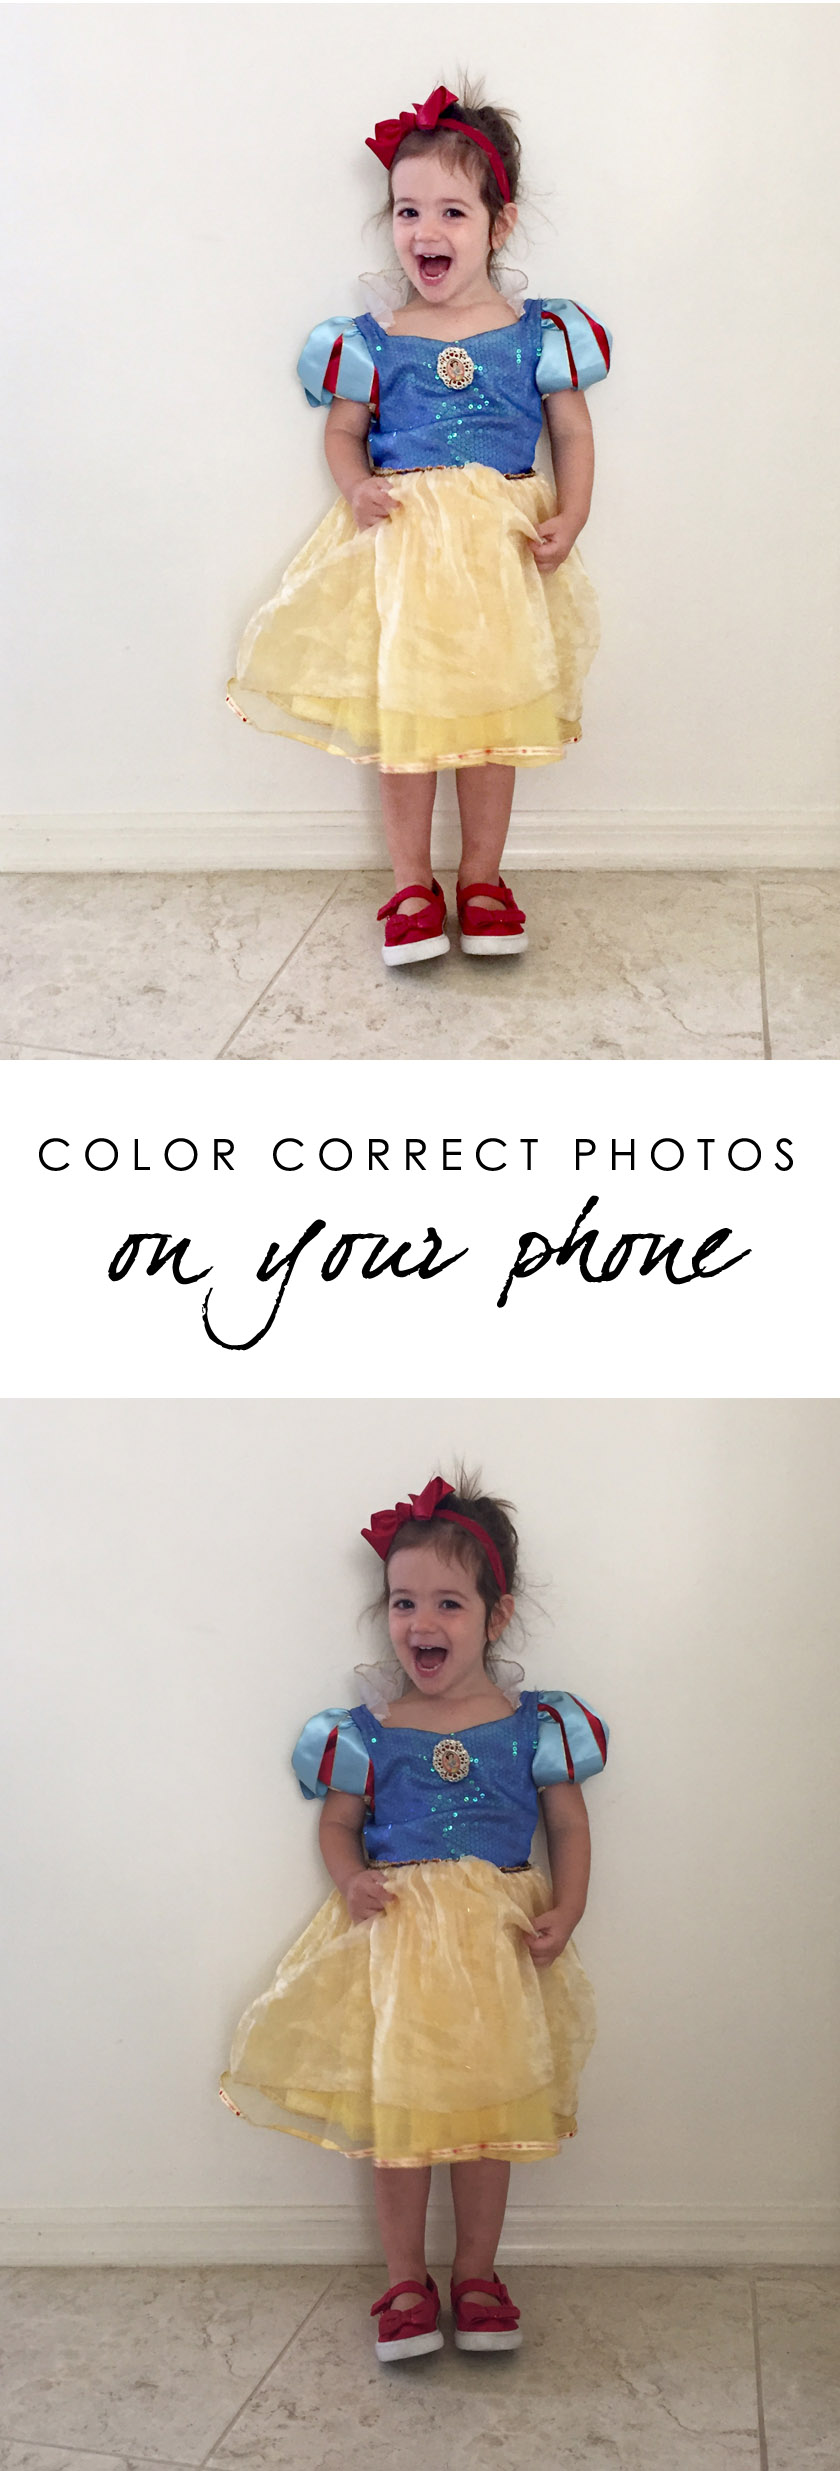 How to color correct and brighten photo on your phone without an app or filter copy